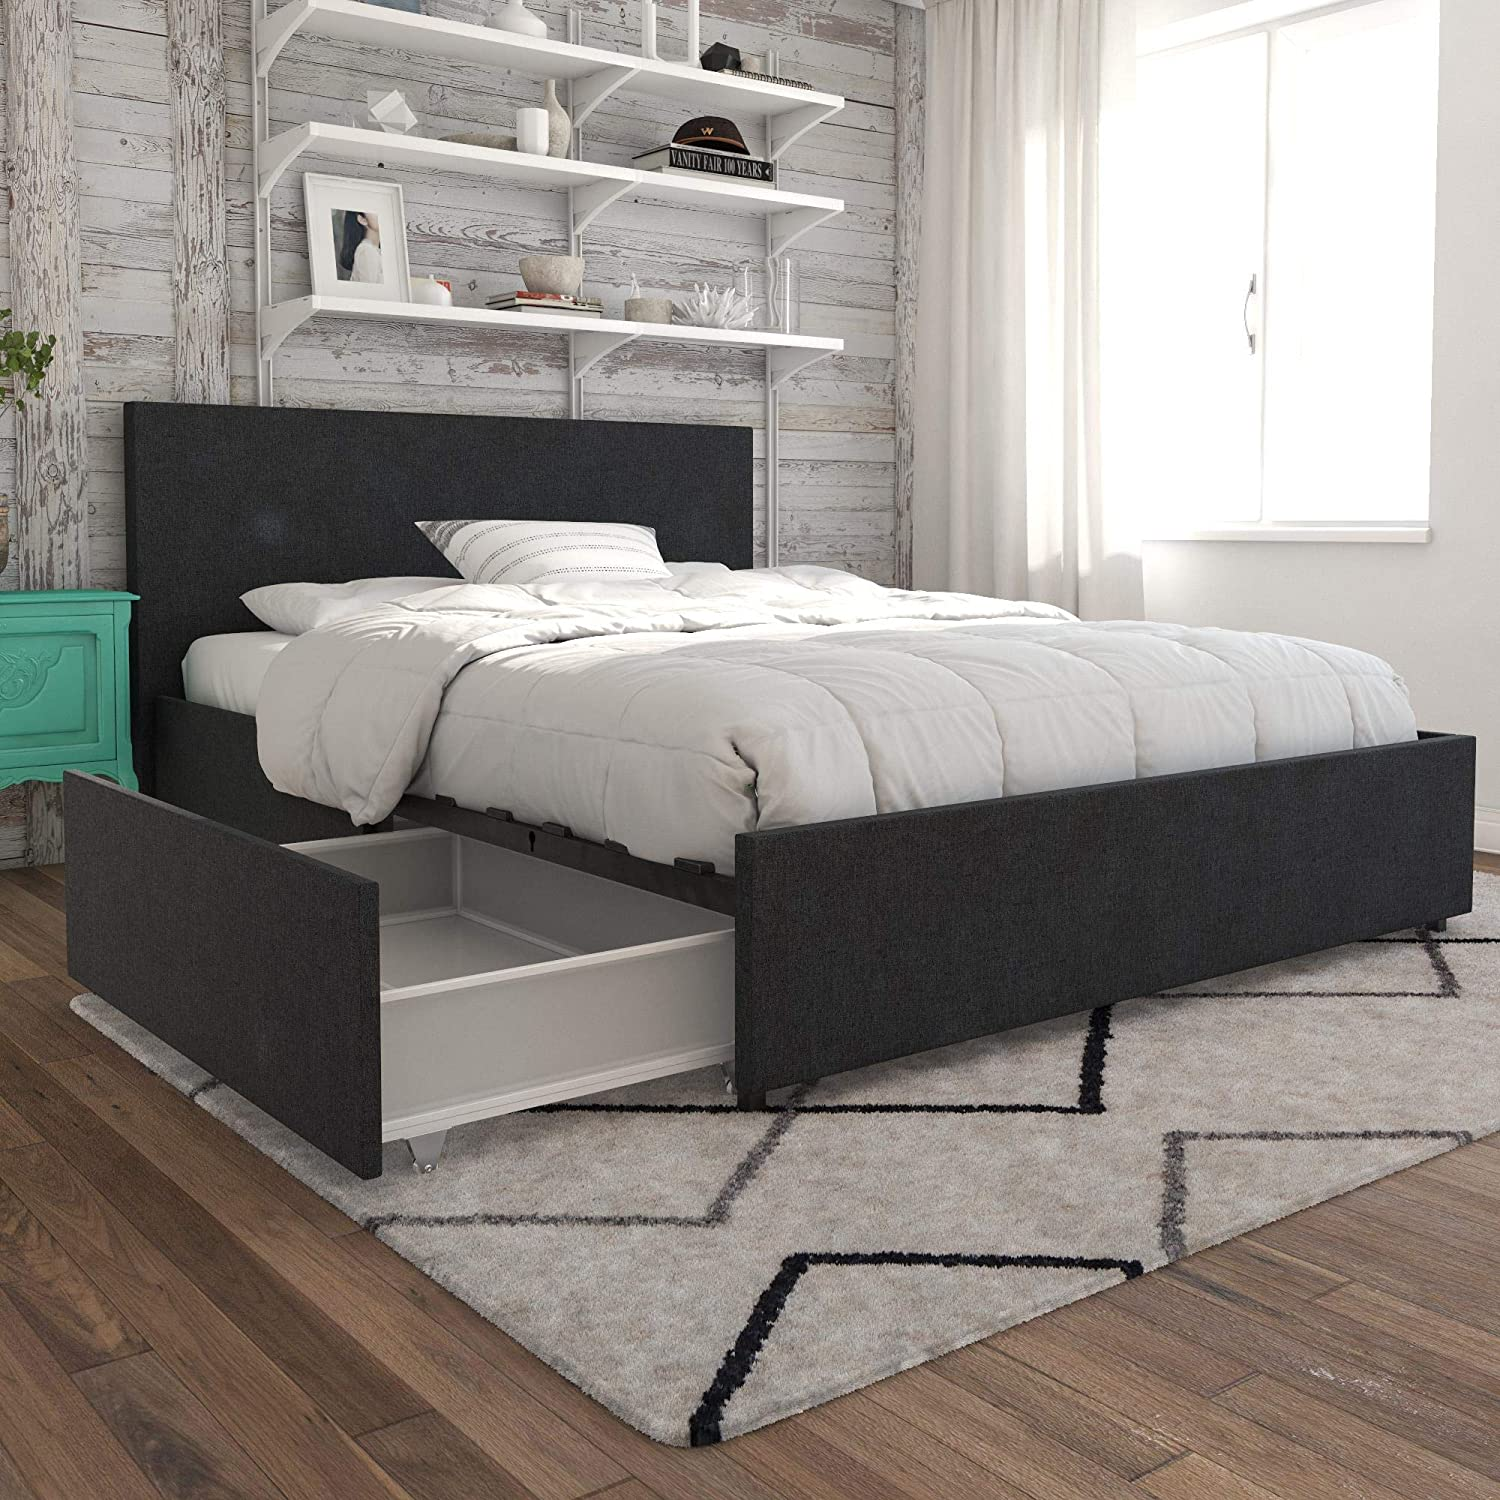 Novogratz 4296429N Kelly Bed with Storage, Full, Dark Gray Linen